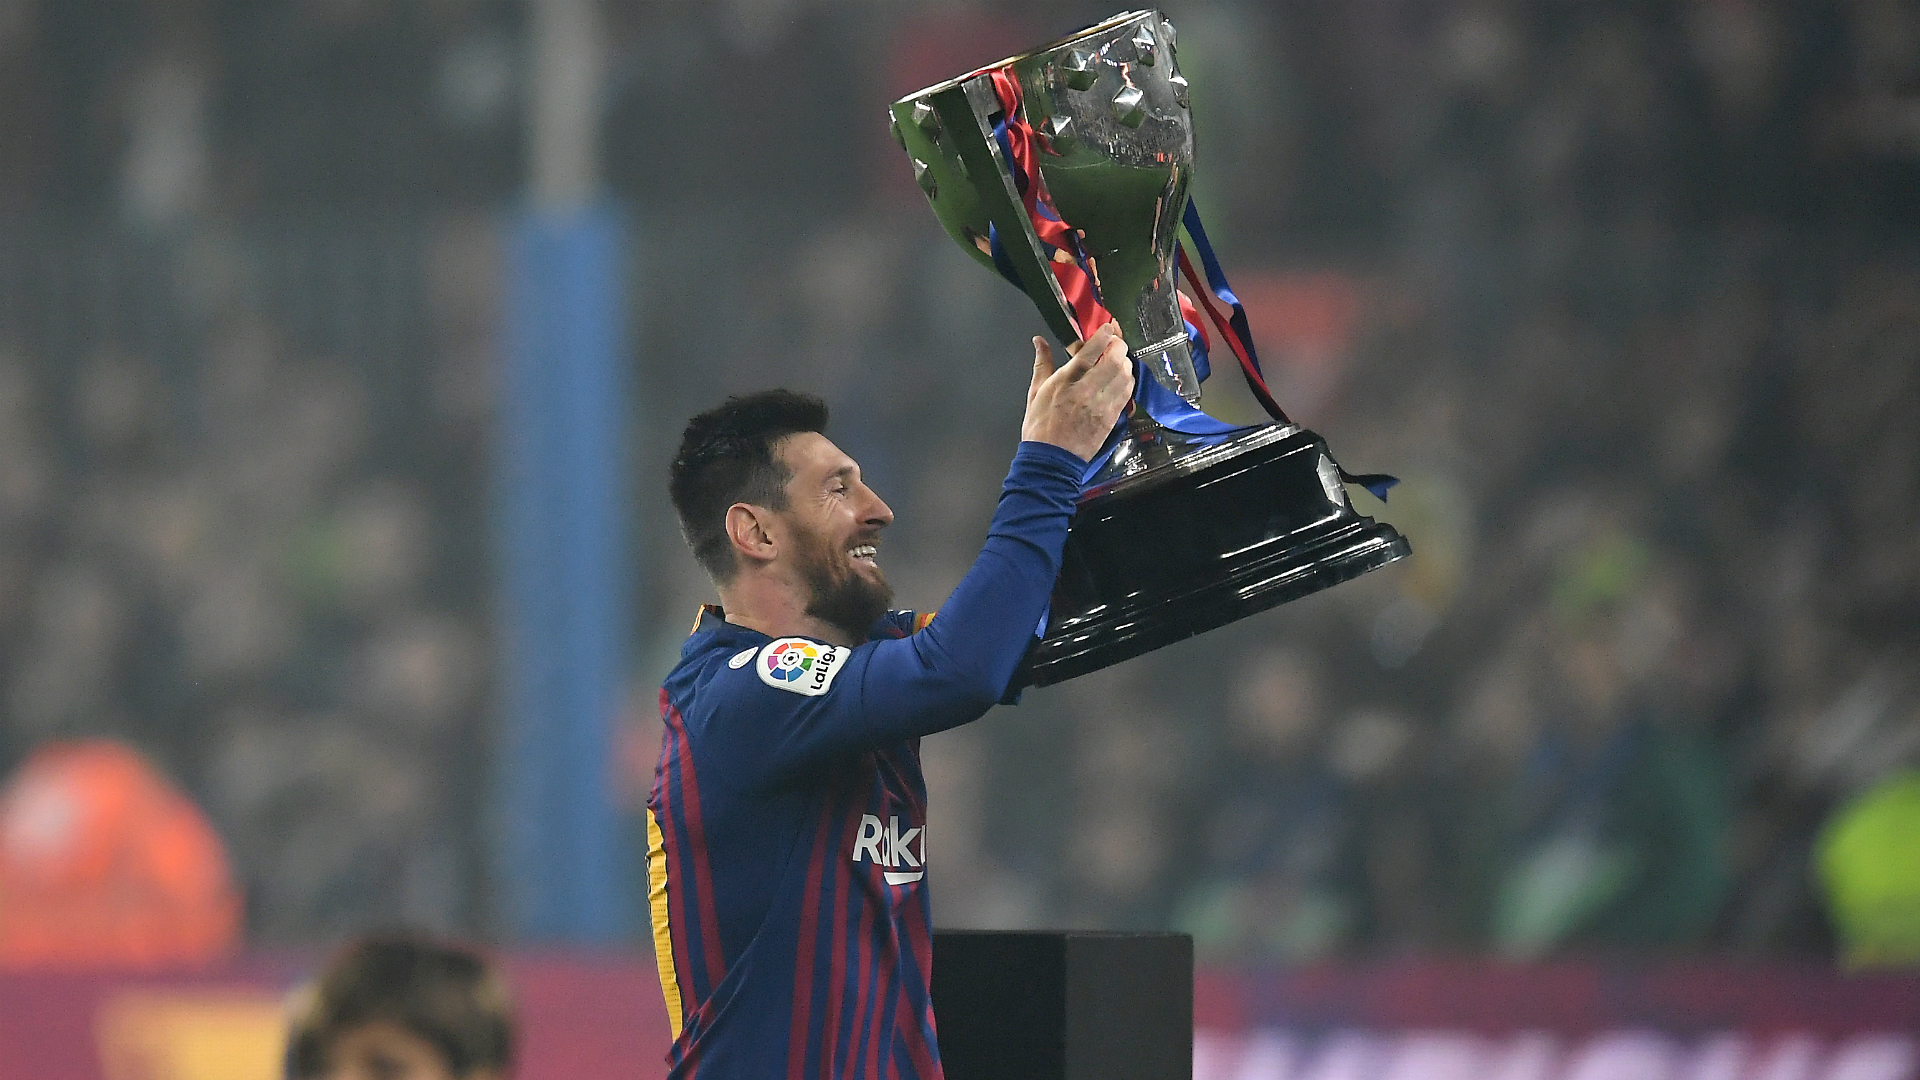 Messi at centre of Barcelona title success, says Valverde